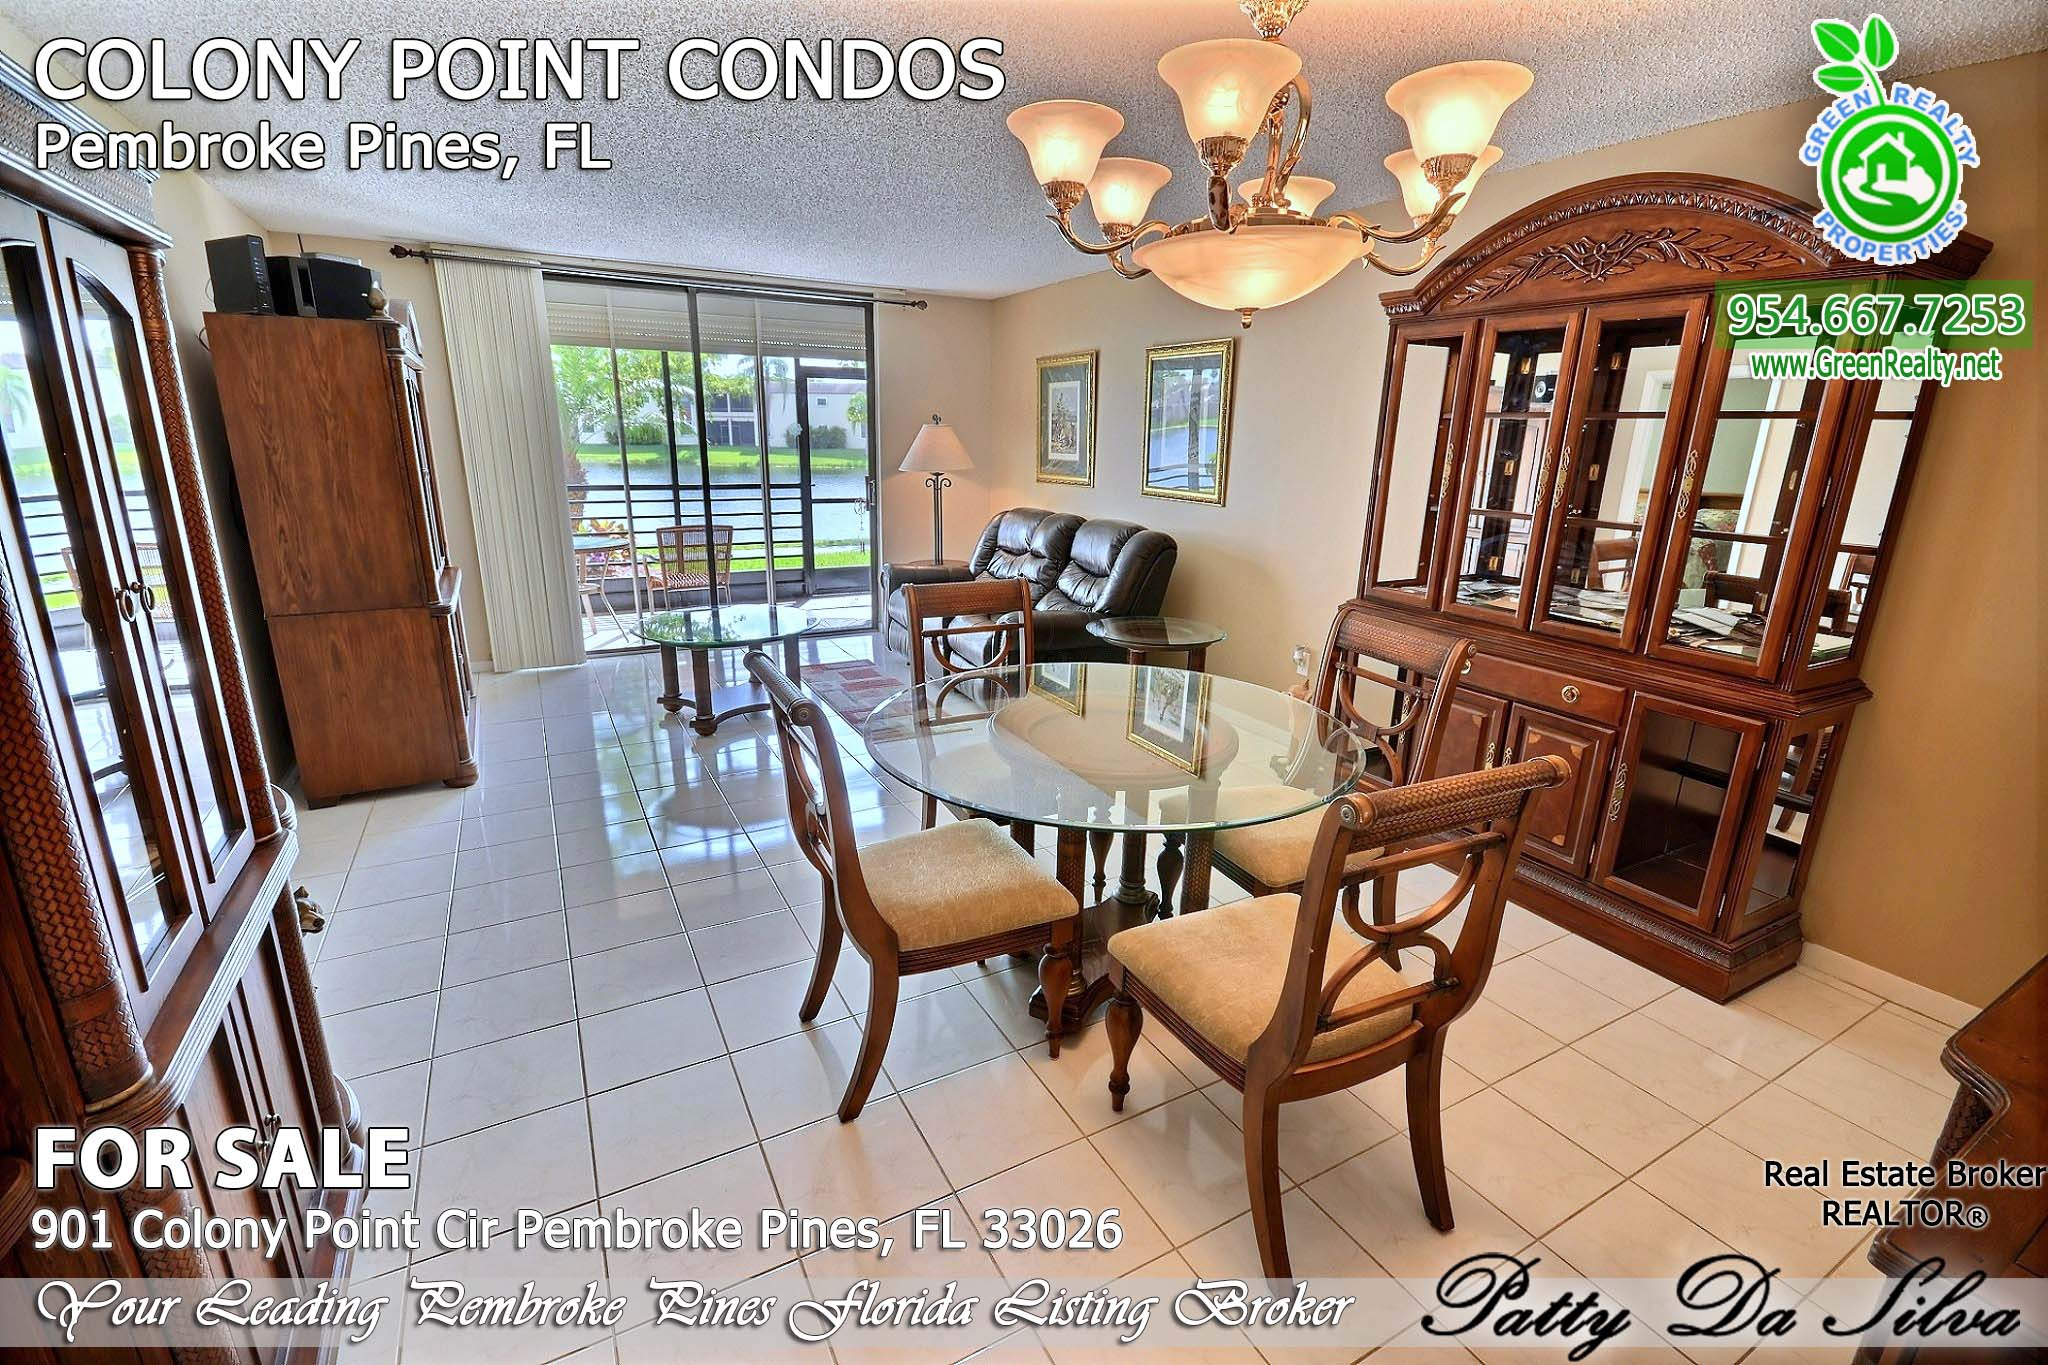 901 Colony Point Cir, Unit 112 - Pembroke Pines Homes For Sale (6)